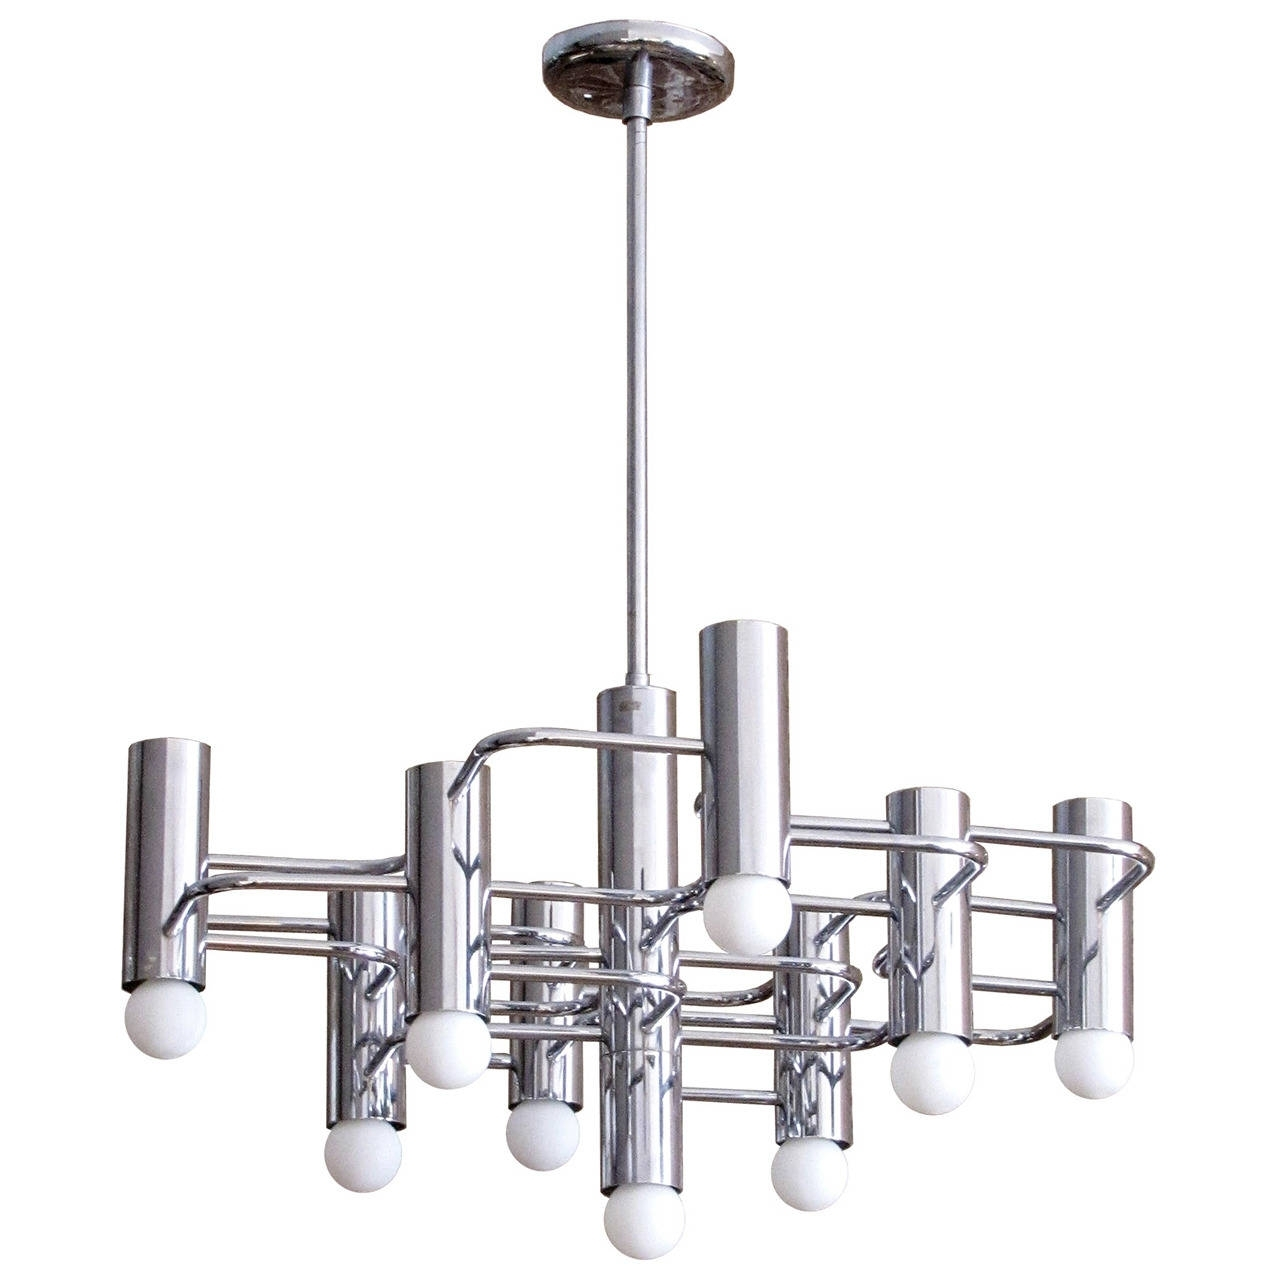 Boulanger Chrome Chandelier, 1960 For Sale At 1Stdibs Pertaining To Well Known Chrome Chandelier (View 5 of 20)